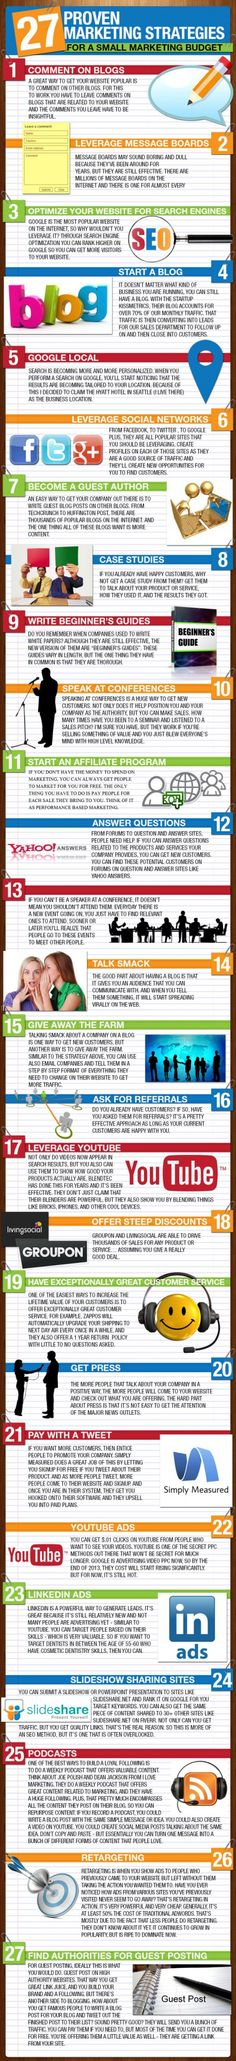 27 Proven Best Marketing Strategies For A Tiny Budget. This is why I love social marketing for small business - so many of these tips rely on having on online presence. This infographic explains all the social media and beyond. Social Marketing, Inbound Marketing, Mundo Marketing, Budget Marketing, Marketing Trends, Marketing Online, Small Business Marketing, Sales And Marketing, Marketing Tools